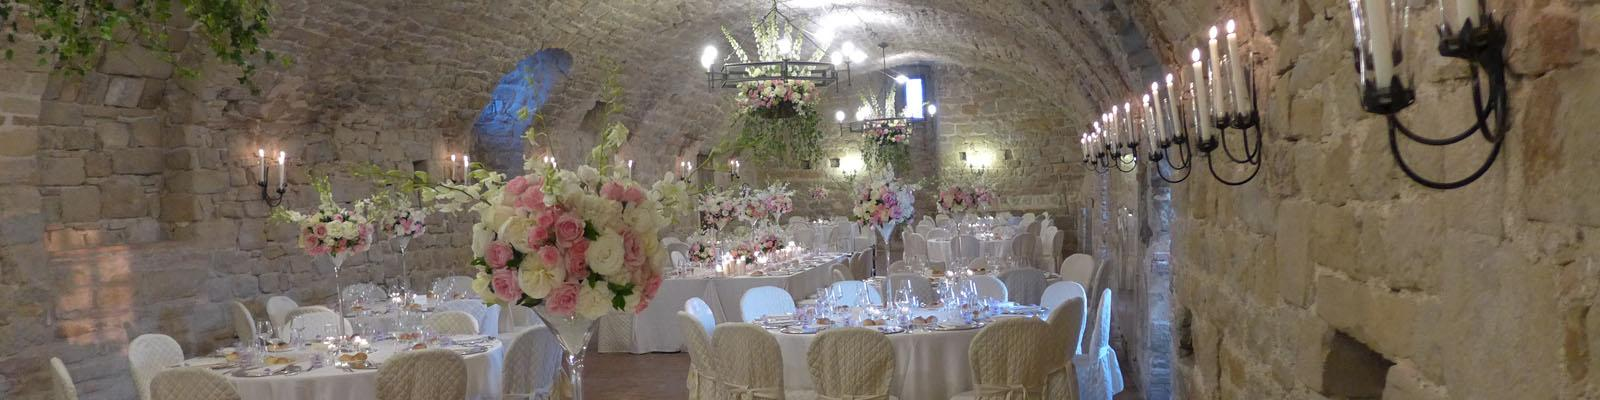 The Arms Hall decorated for a wedding in pink and white